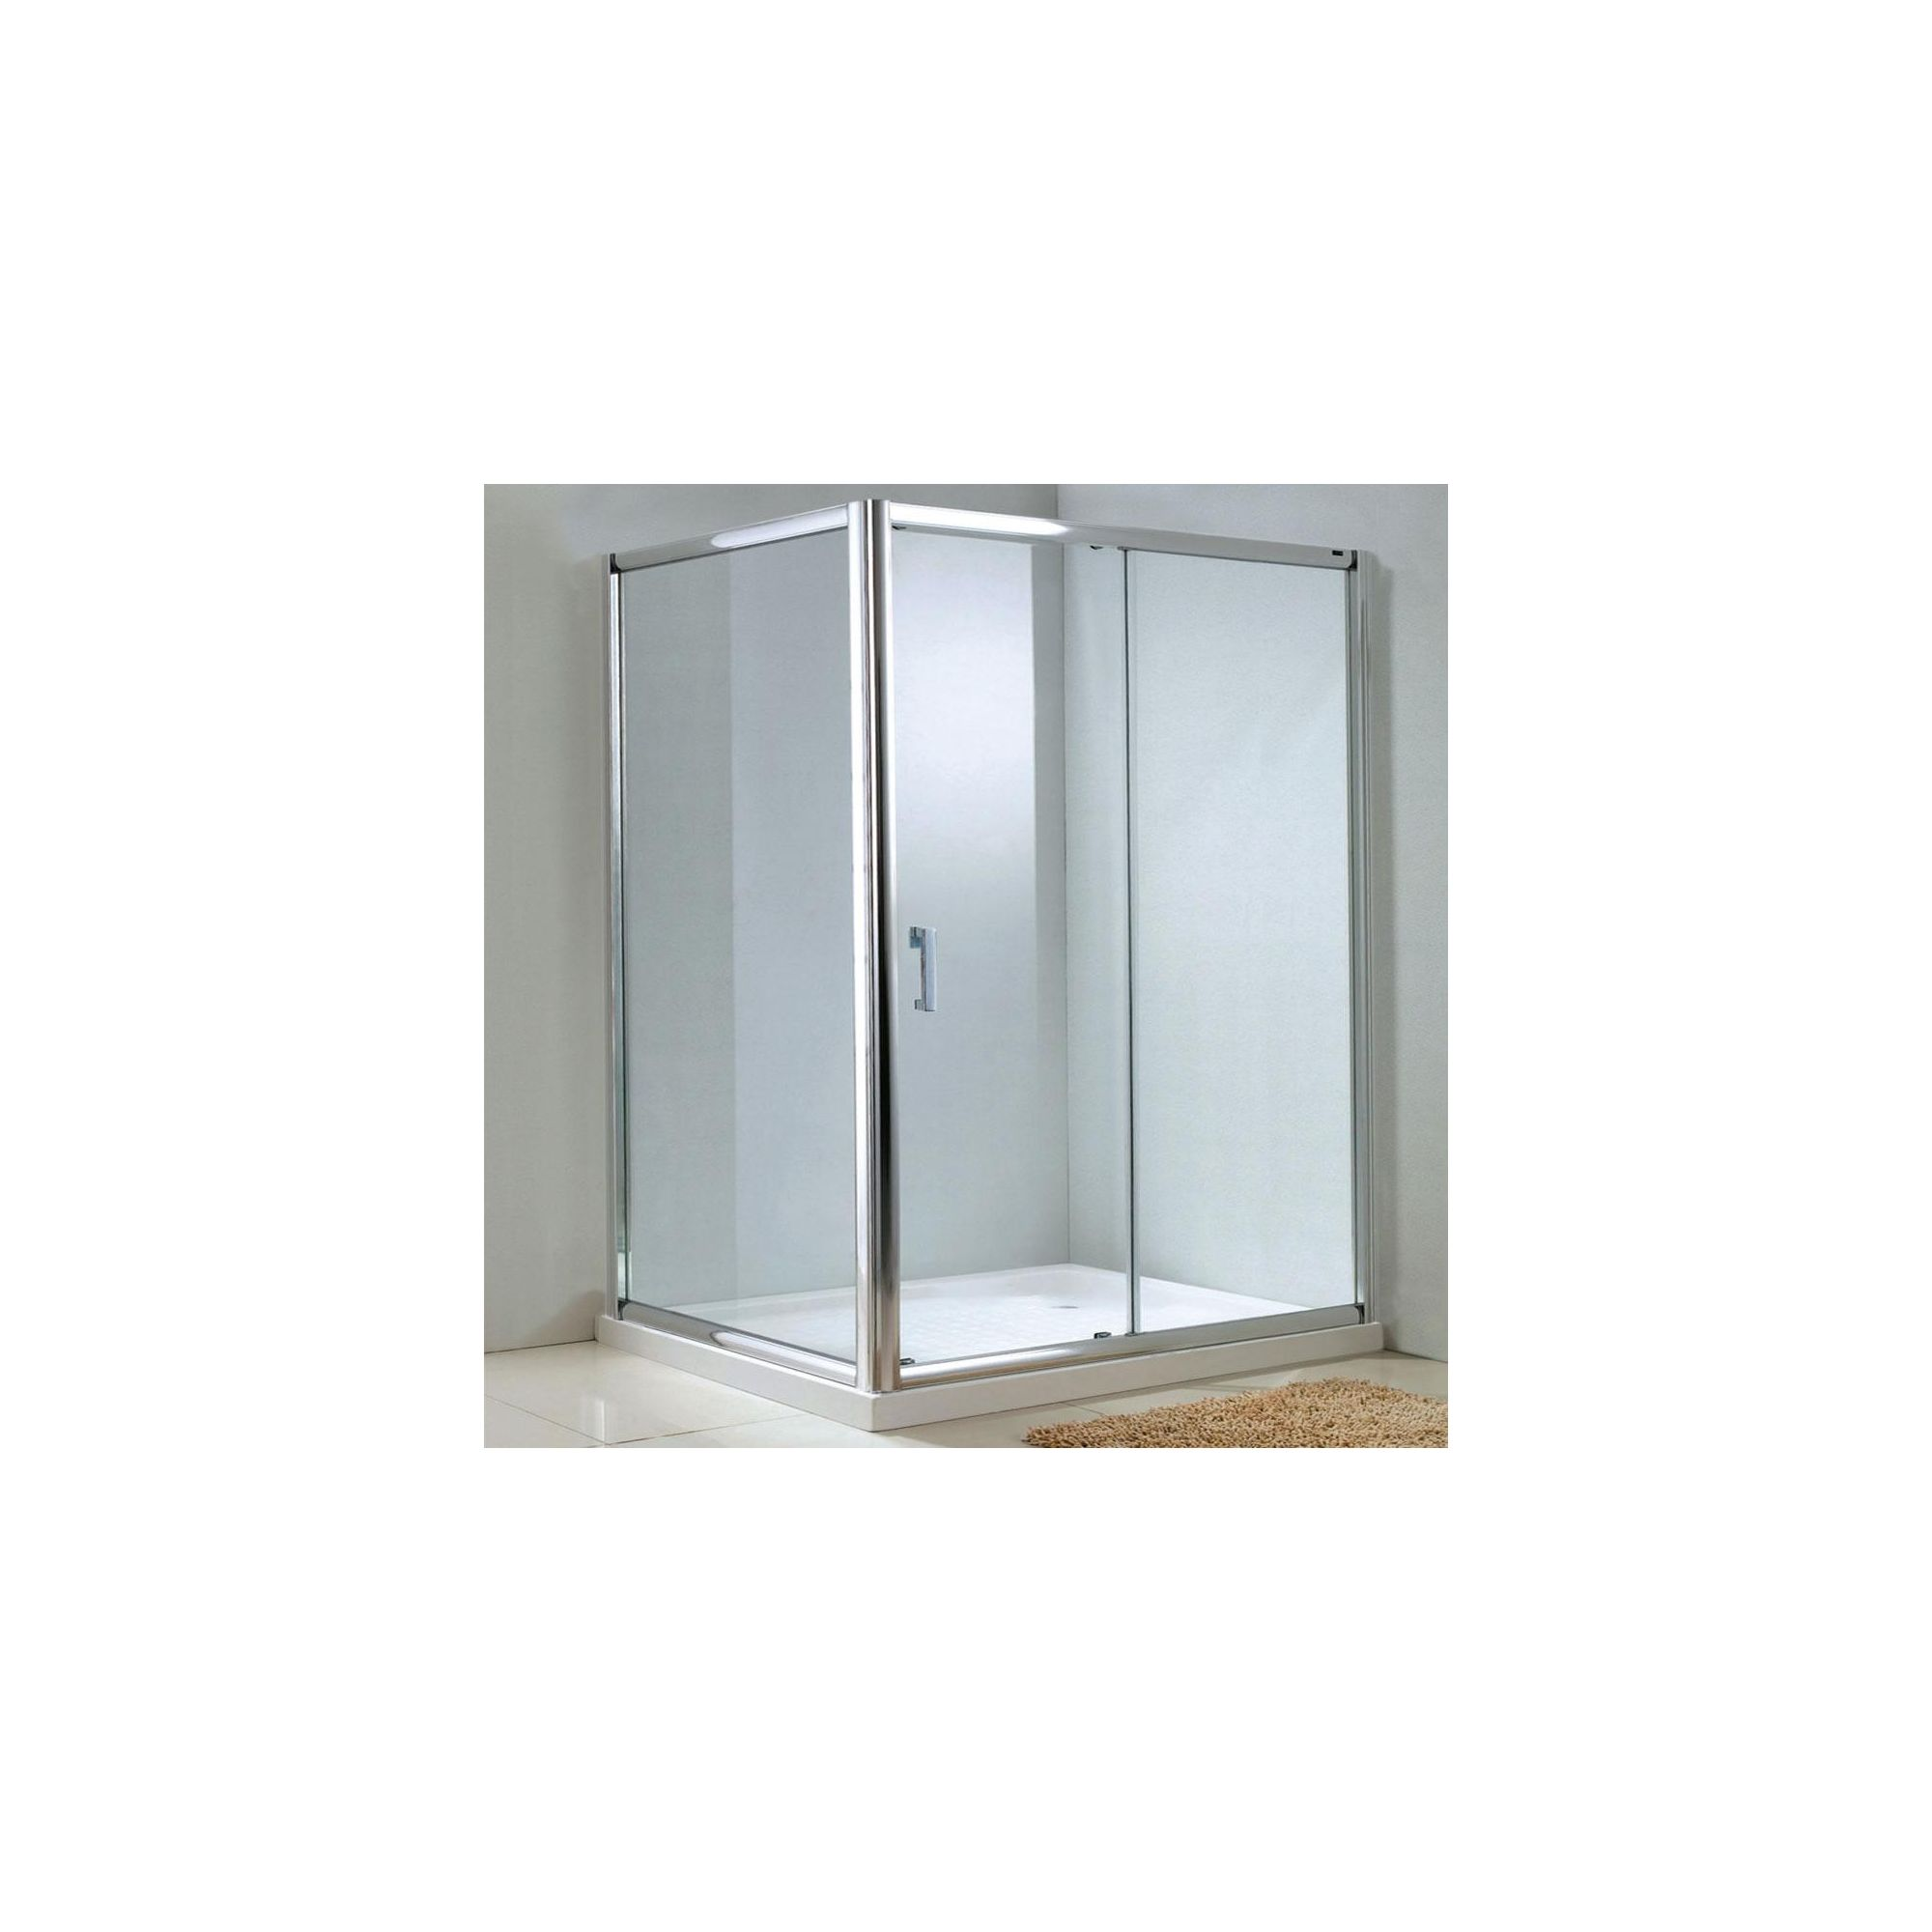 Duchy Style Single Sliding Door Shower Enclosure, 1200mm x 760mm, 6mm Glass, Low Profile Tray at Tescos Direct